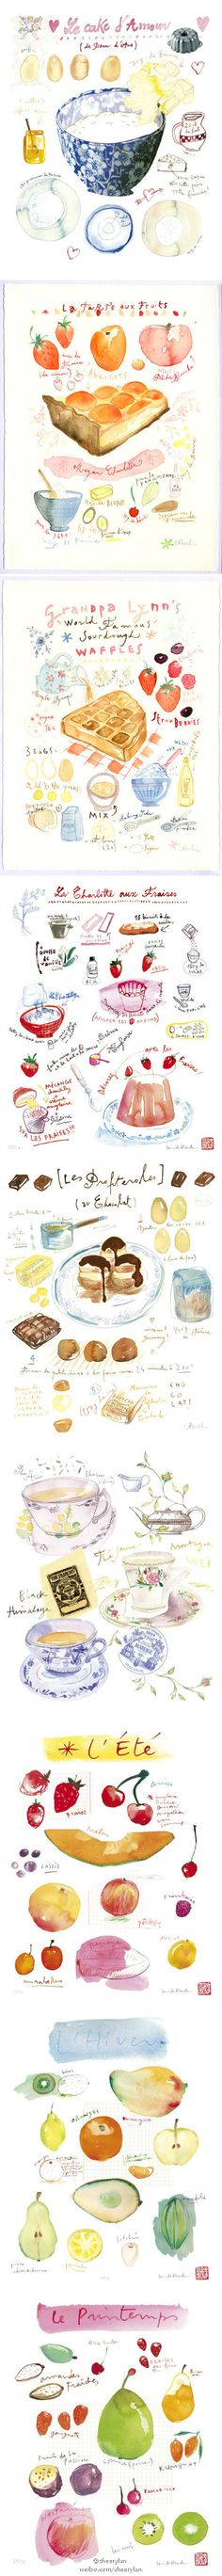 Watercolor recipes!